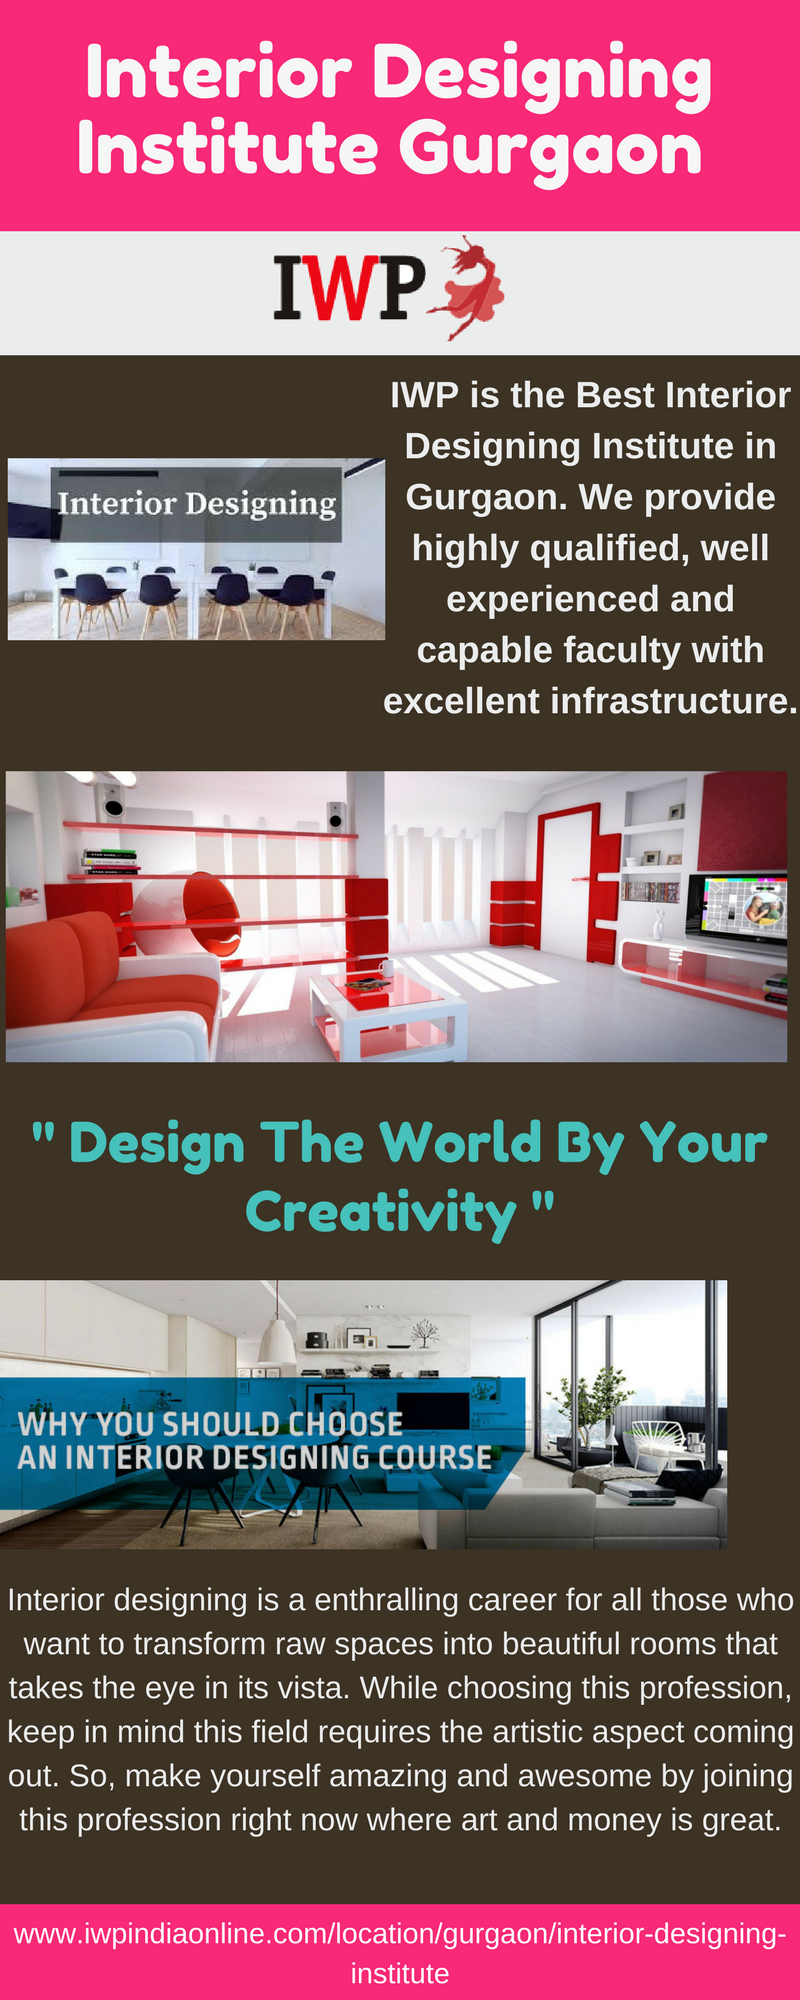 IWP is the great institute for Interior